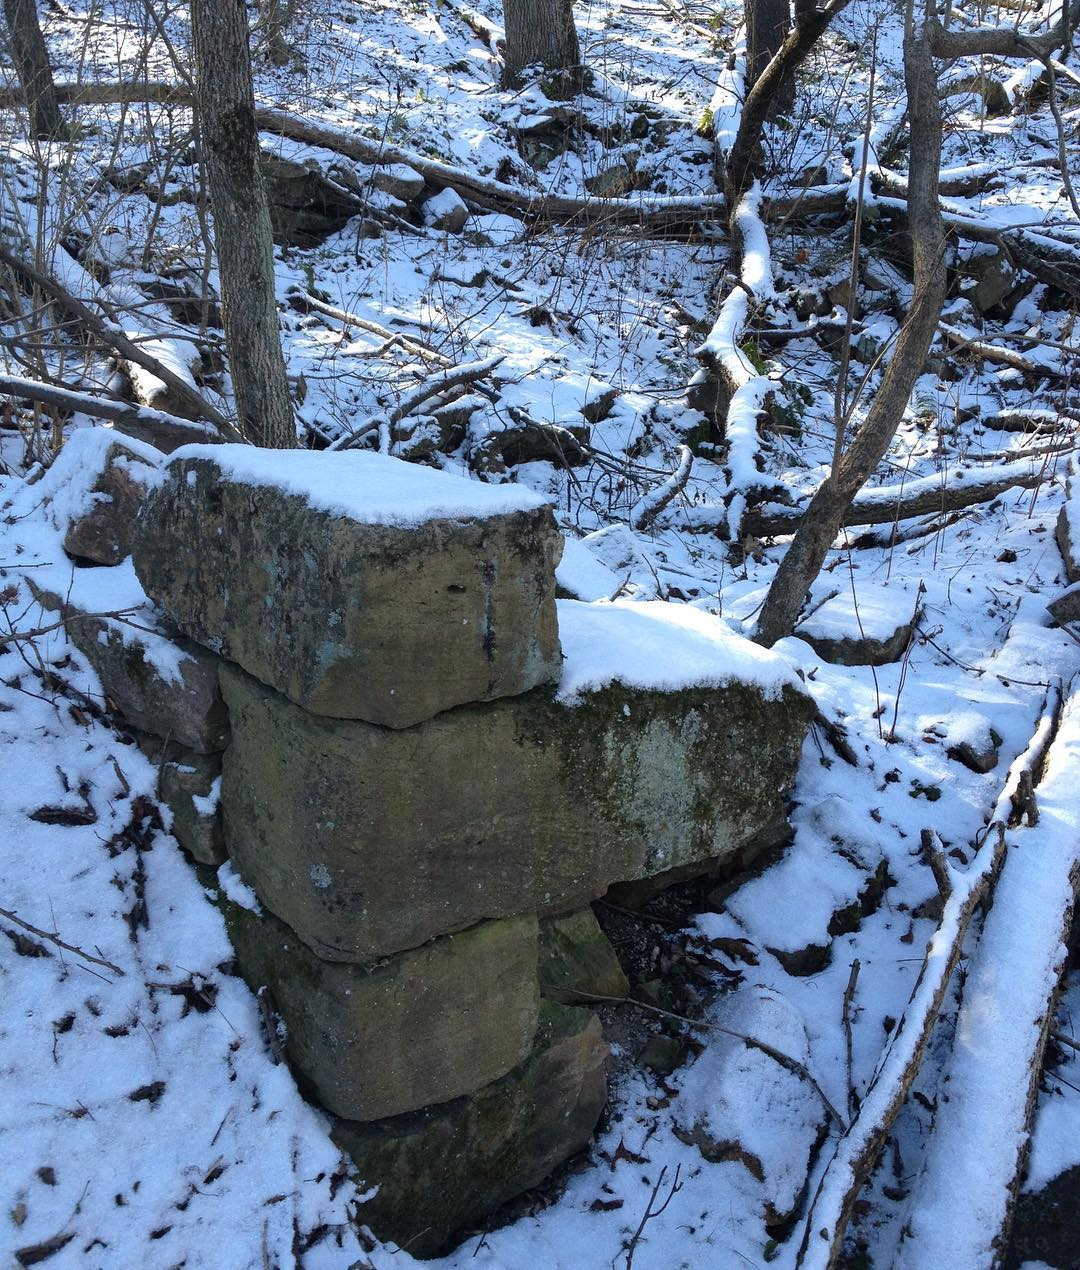 The corner stones of an otherwise vanished house in the woods, dusted with snow.